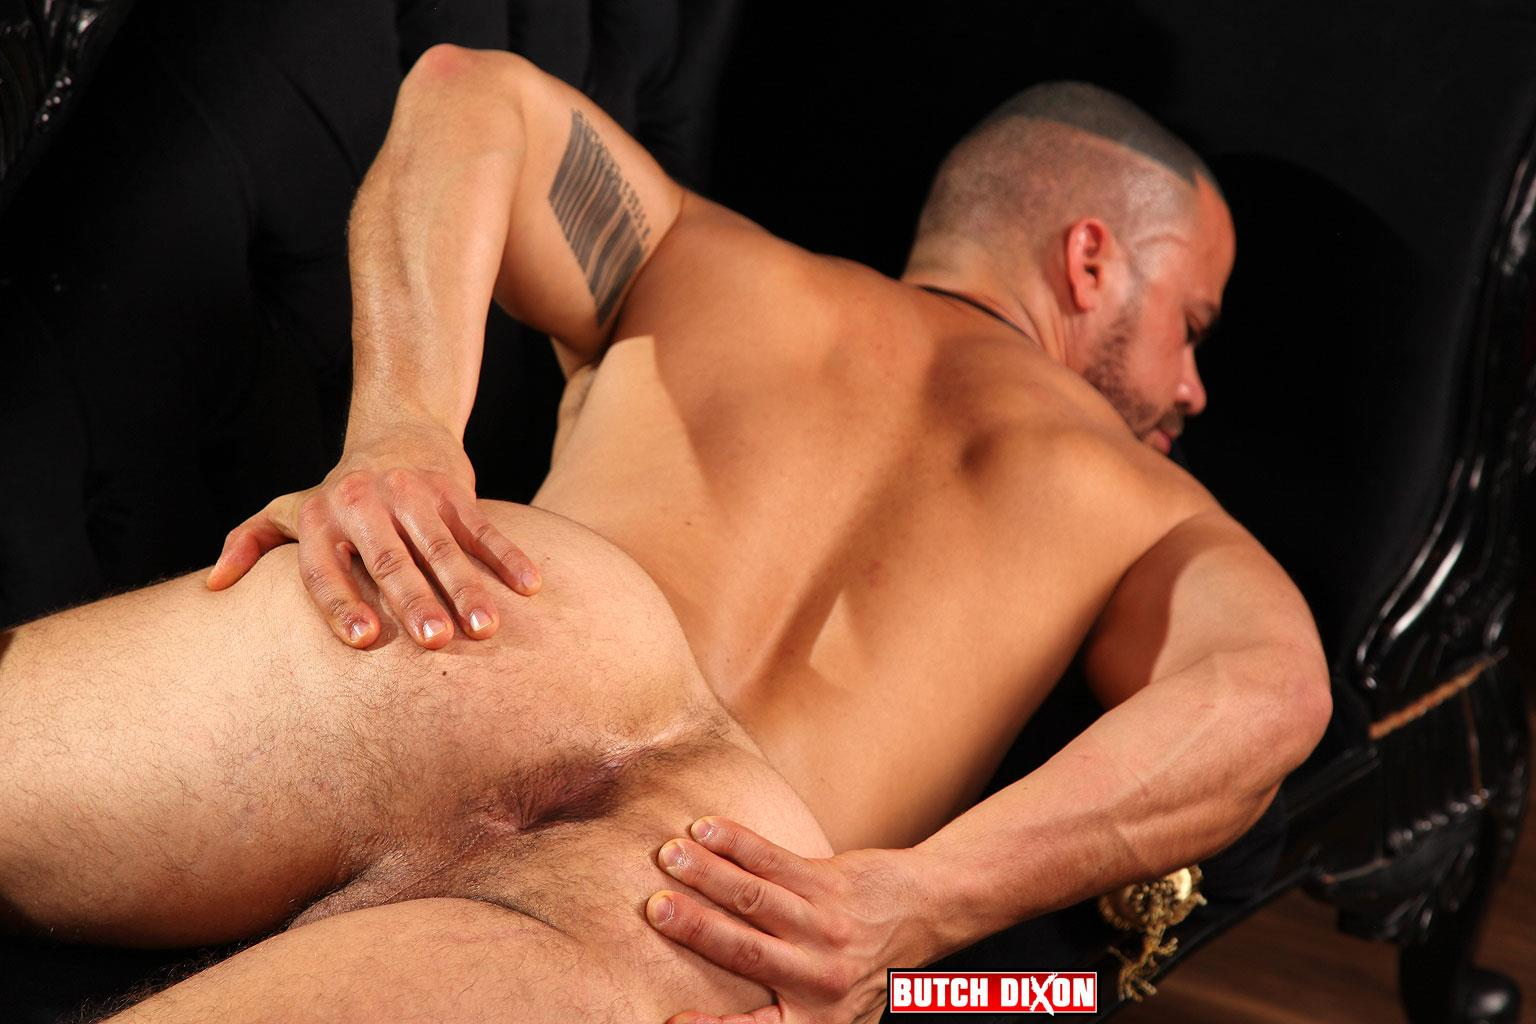 Butch Dixon Delta Kobra Muscle Hunk With A Big Uncut Cock Jerking Off Amateur Gay Porn 15